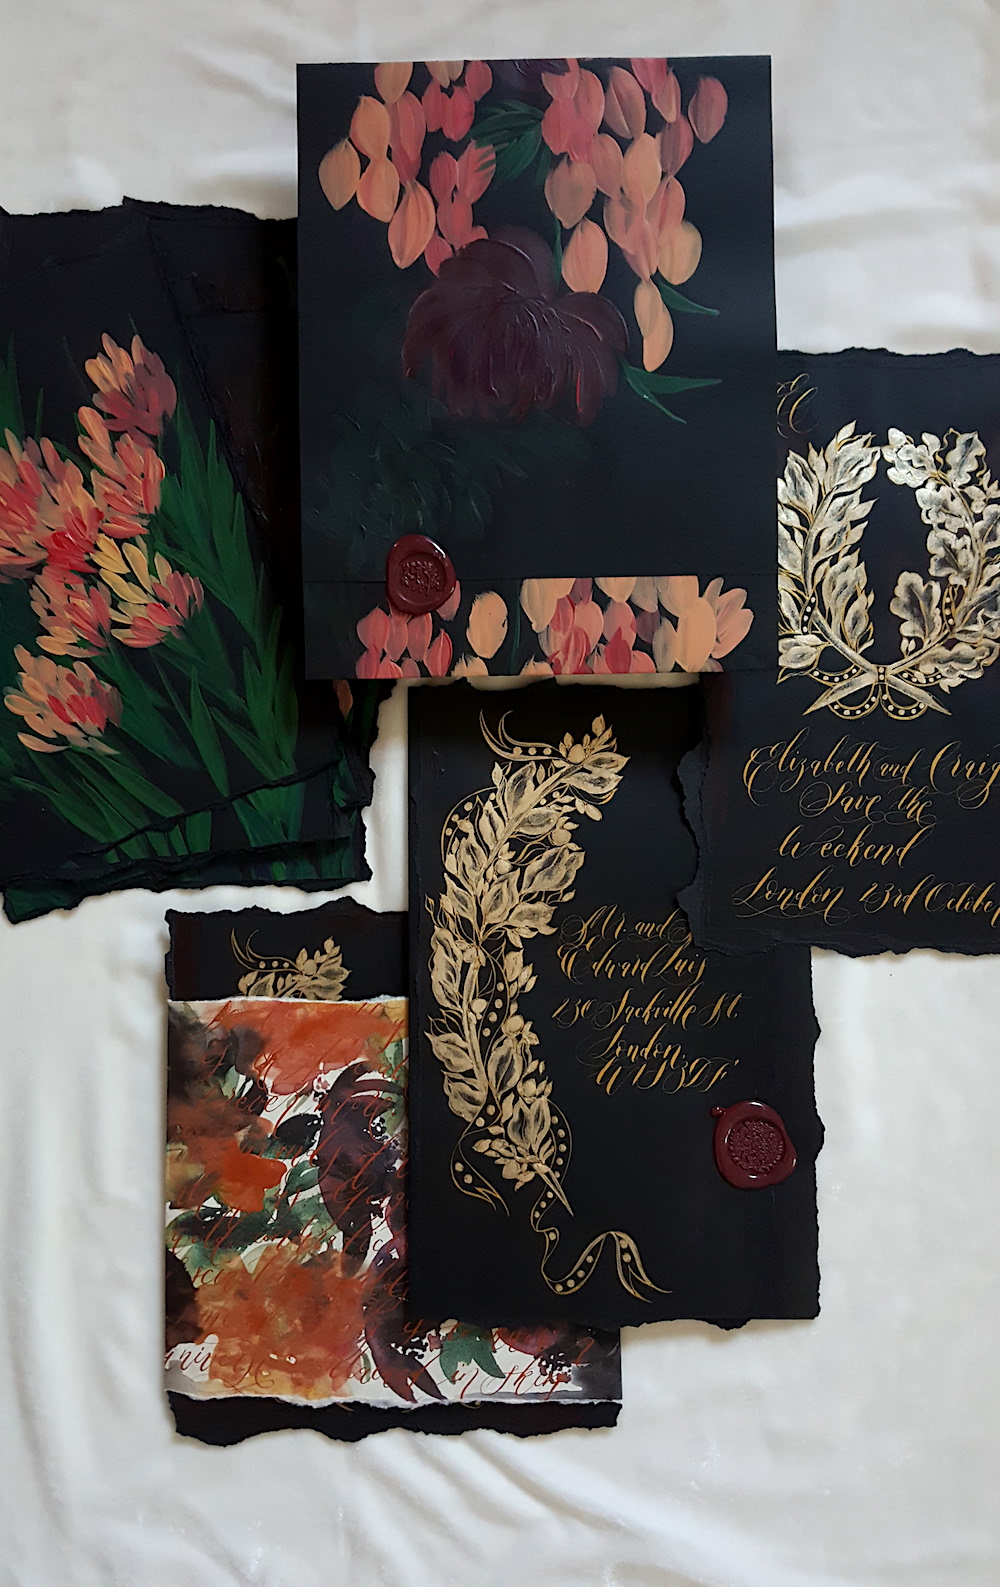 Acrylic paintings - with black and gold invitations for a luxury wedding